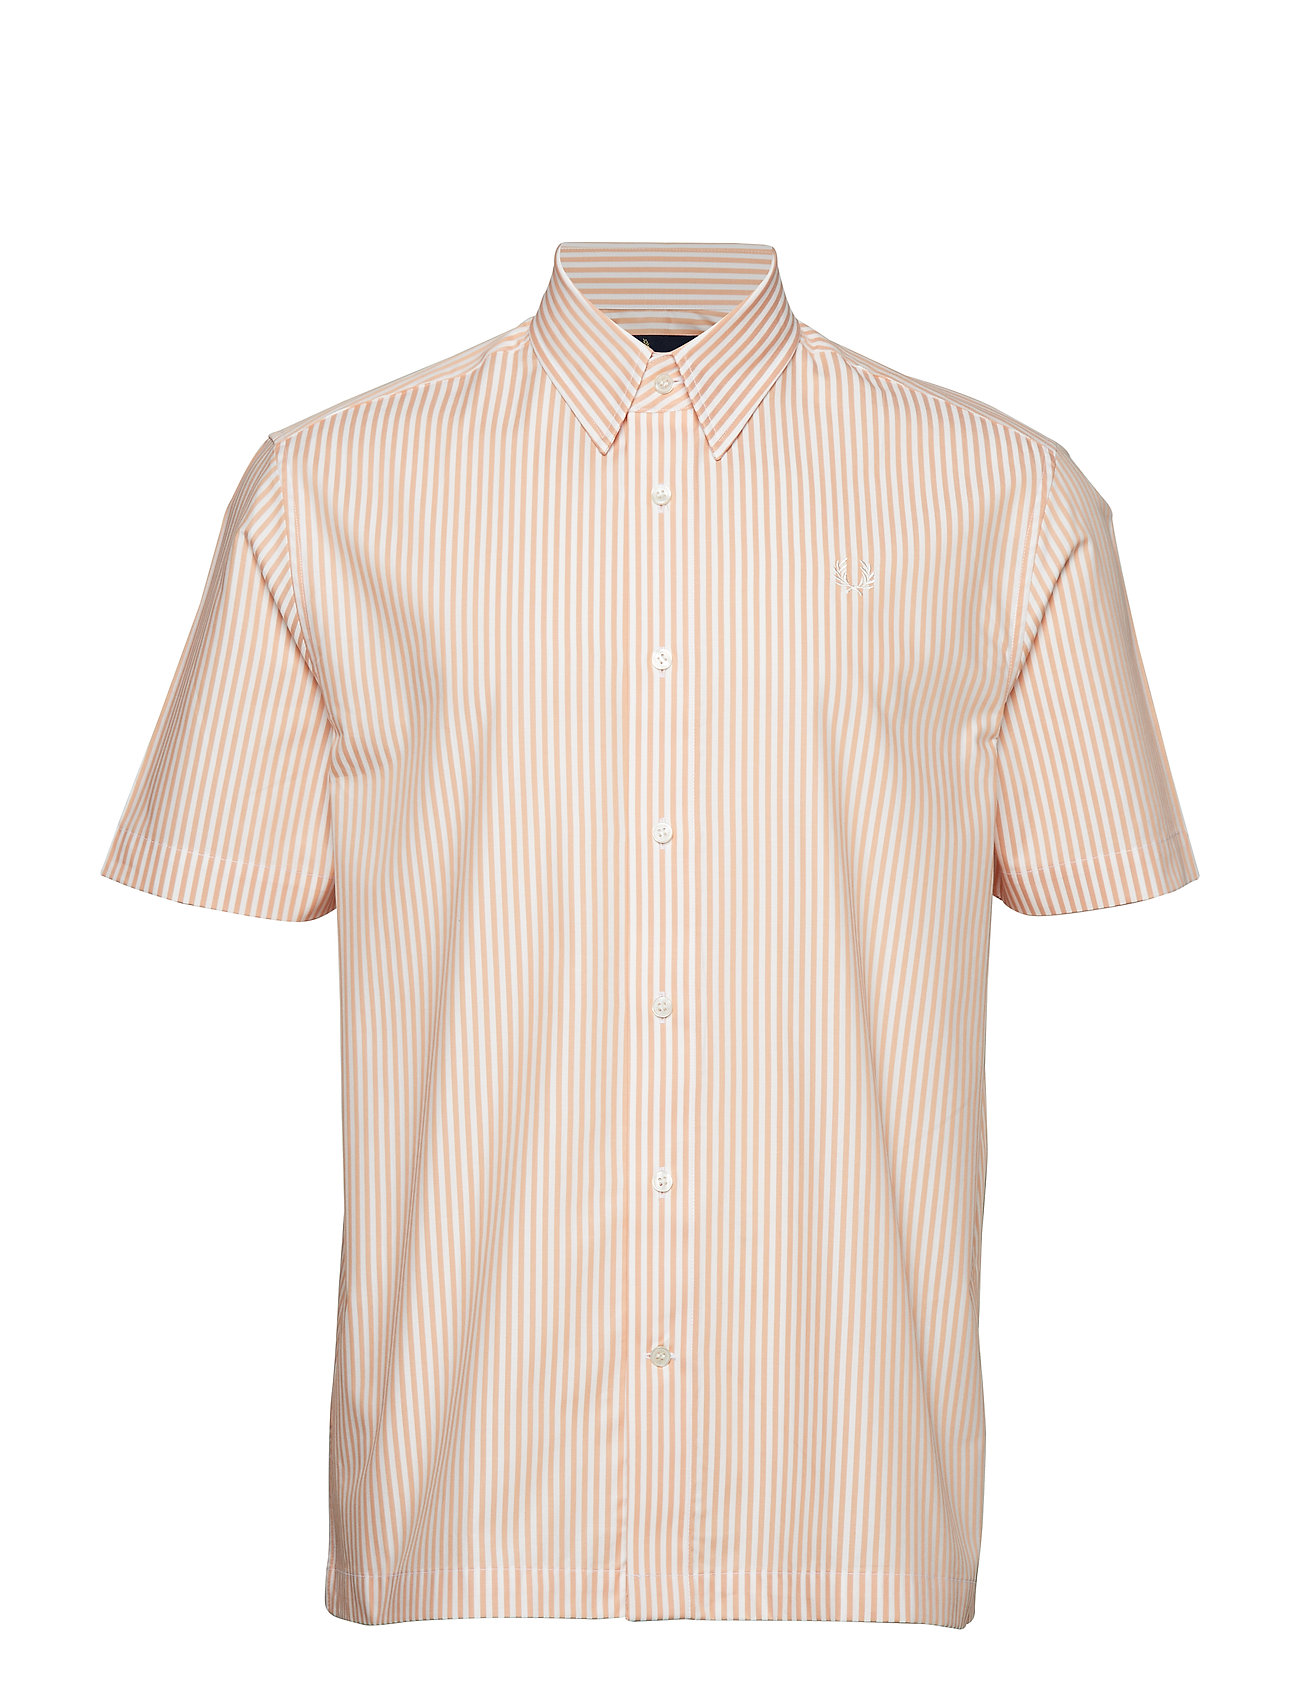 Fred Perry VERTICAL SHIRT - APRICOT